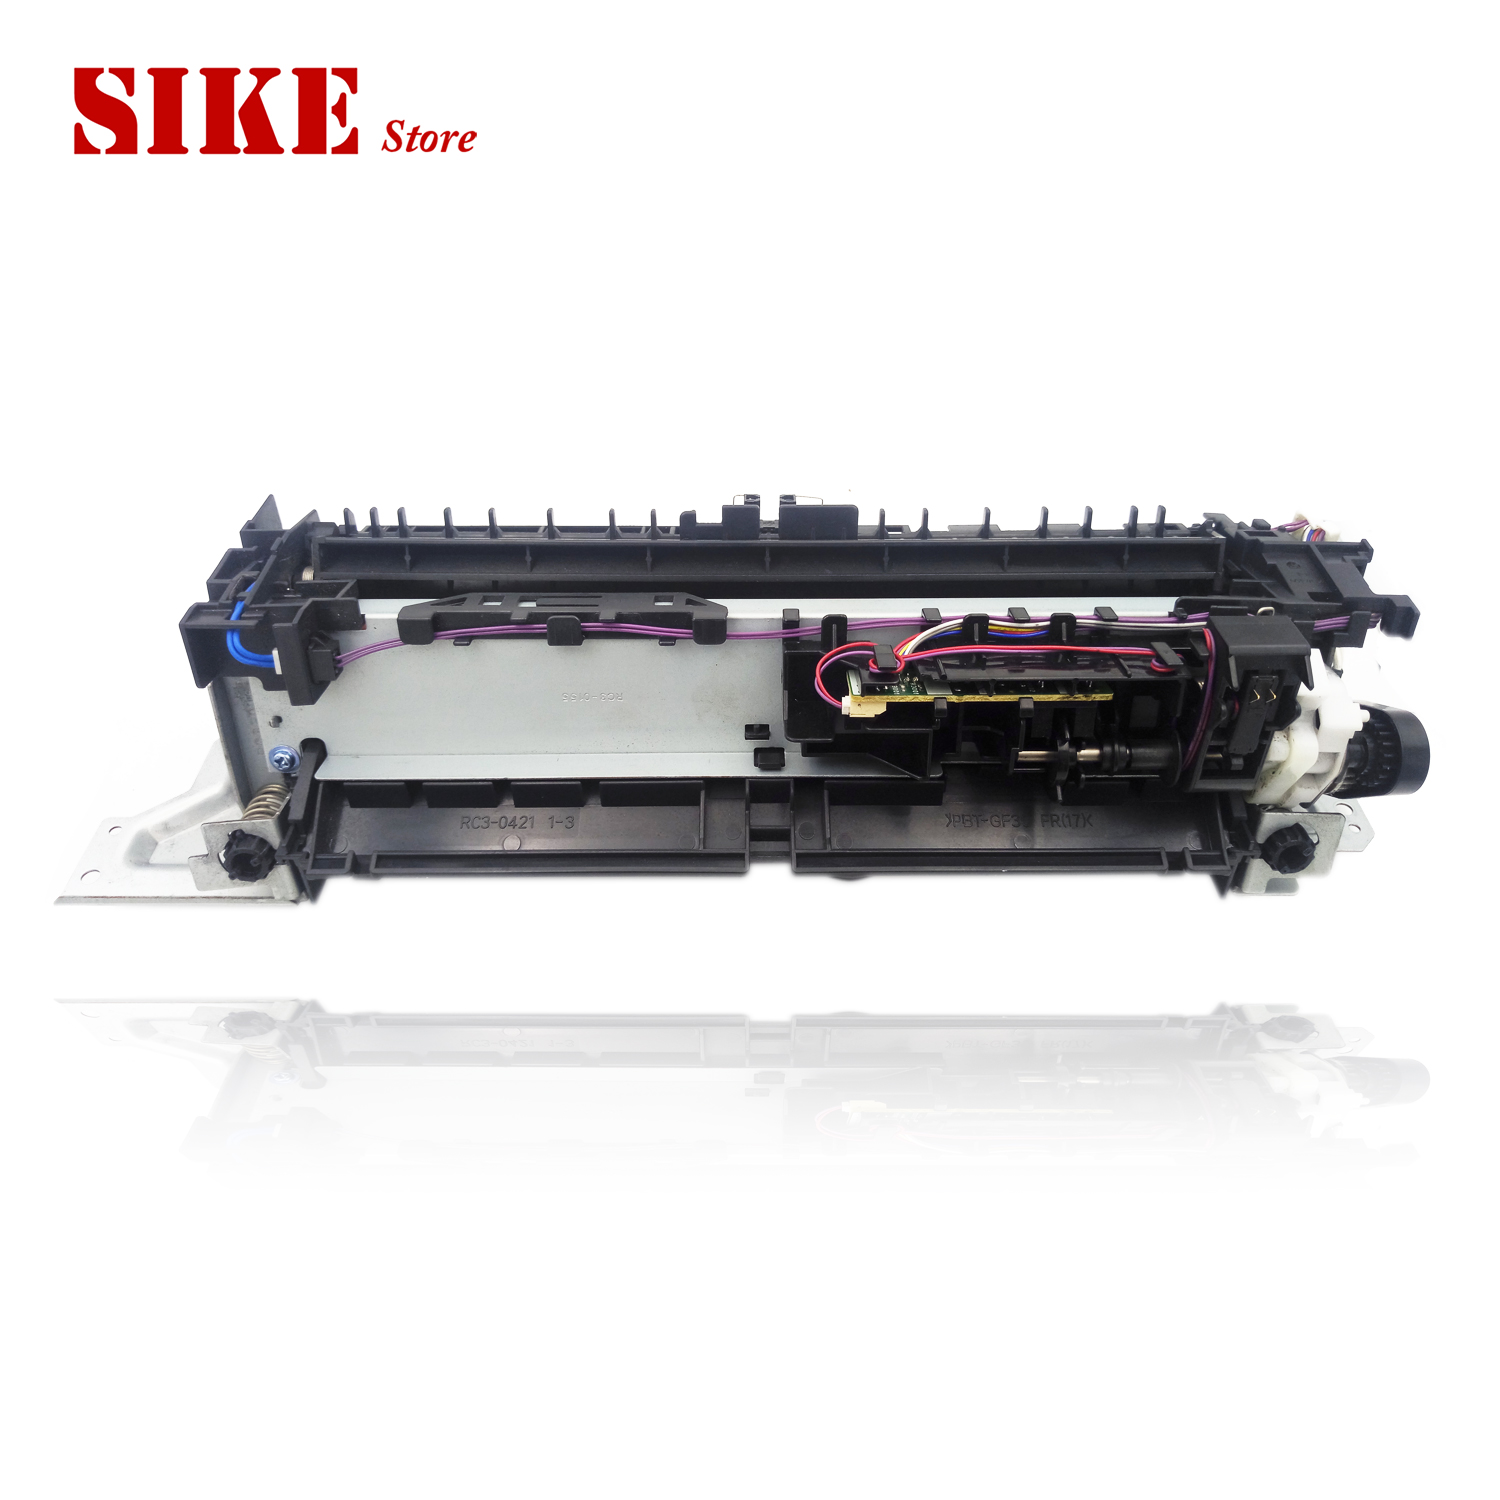 RM2-0157 RM2-0167 Fuser Assembly Unit For HP M176 M176n M177fw 176n 177fw 176 Fusing Heating Fixing Assy